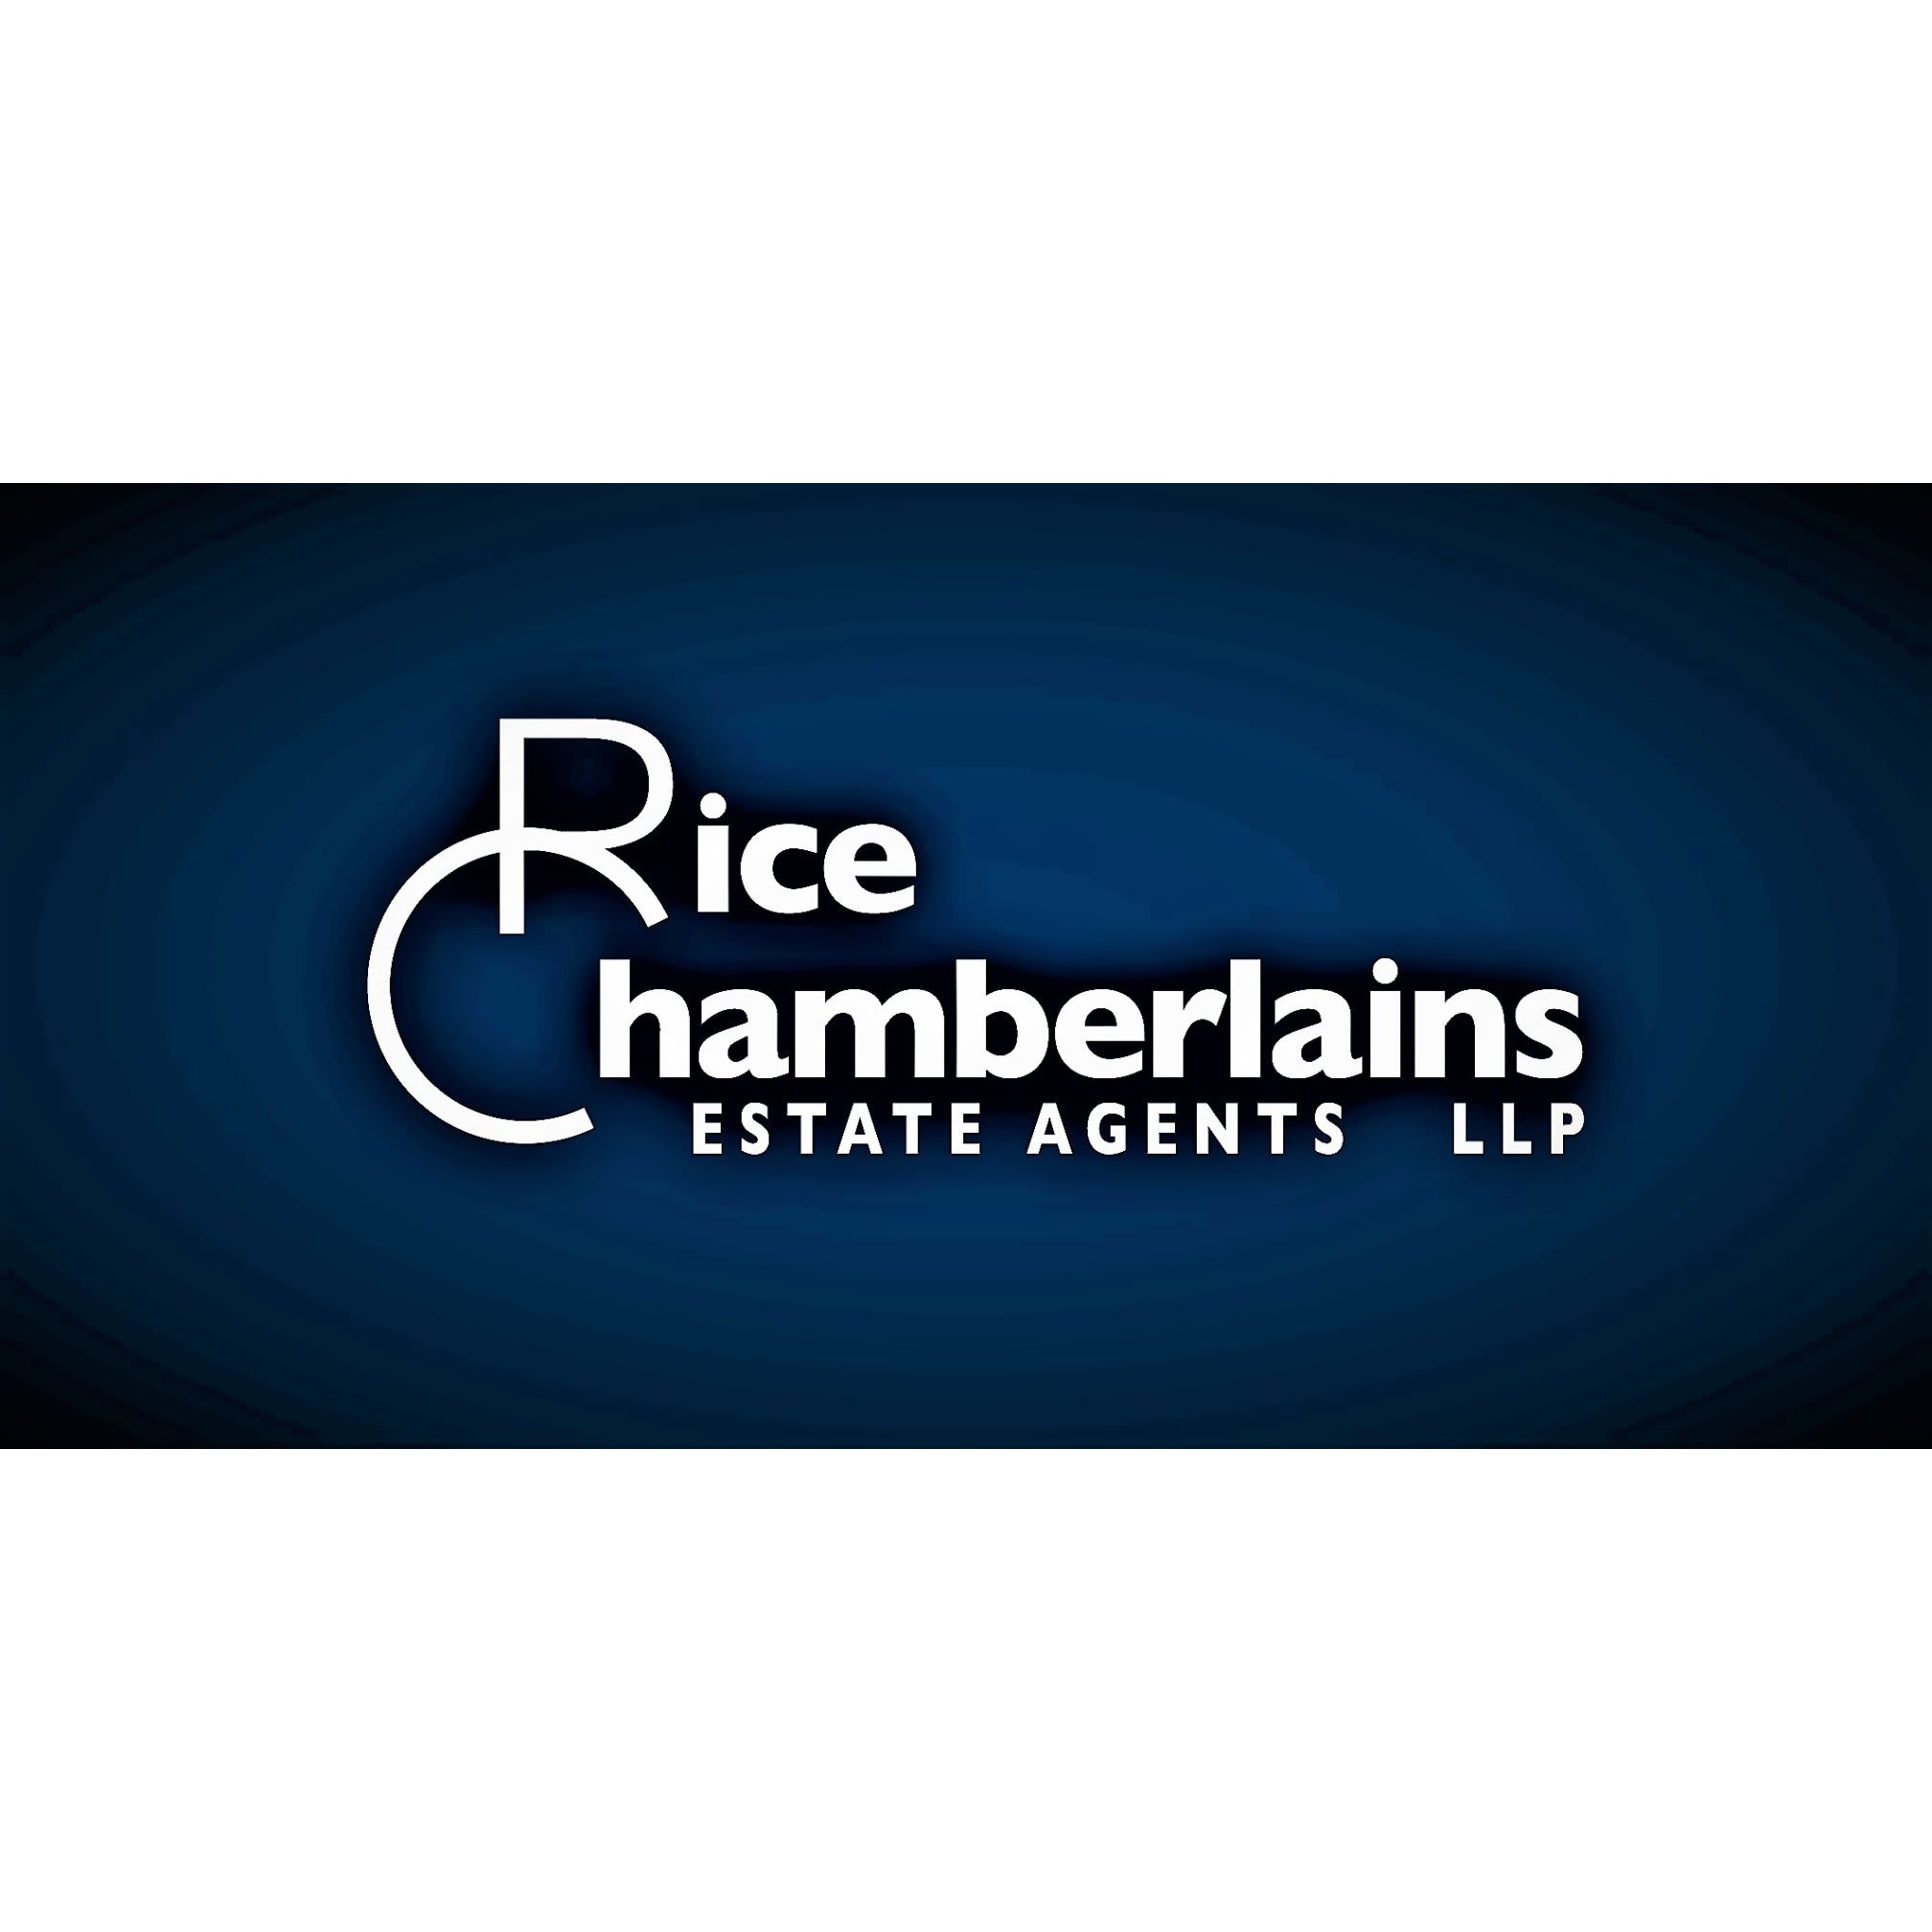 Rice Chamberlains LLP - Birmingham, West Midlands B13 8HW - 01214 424040 | ShowMeLocal.com